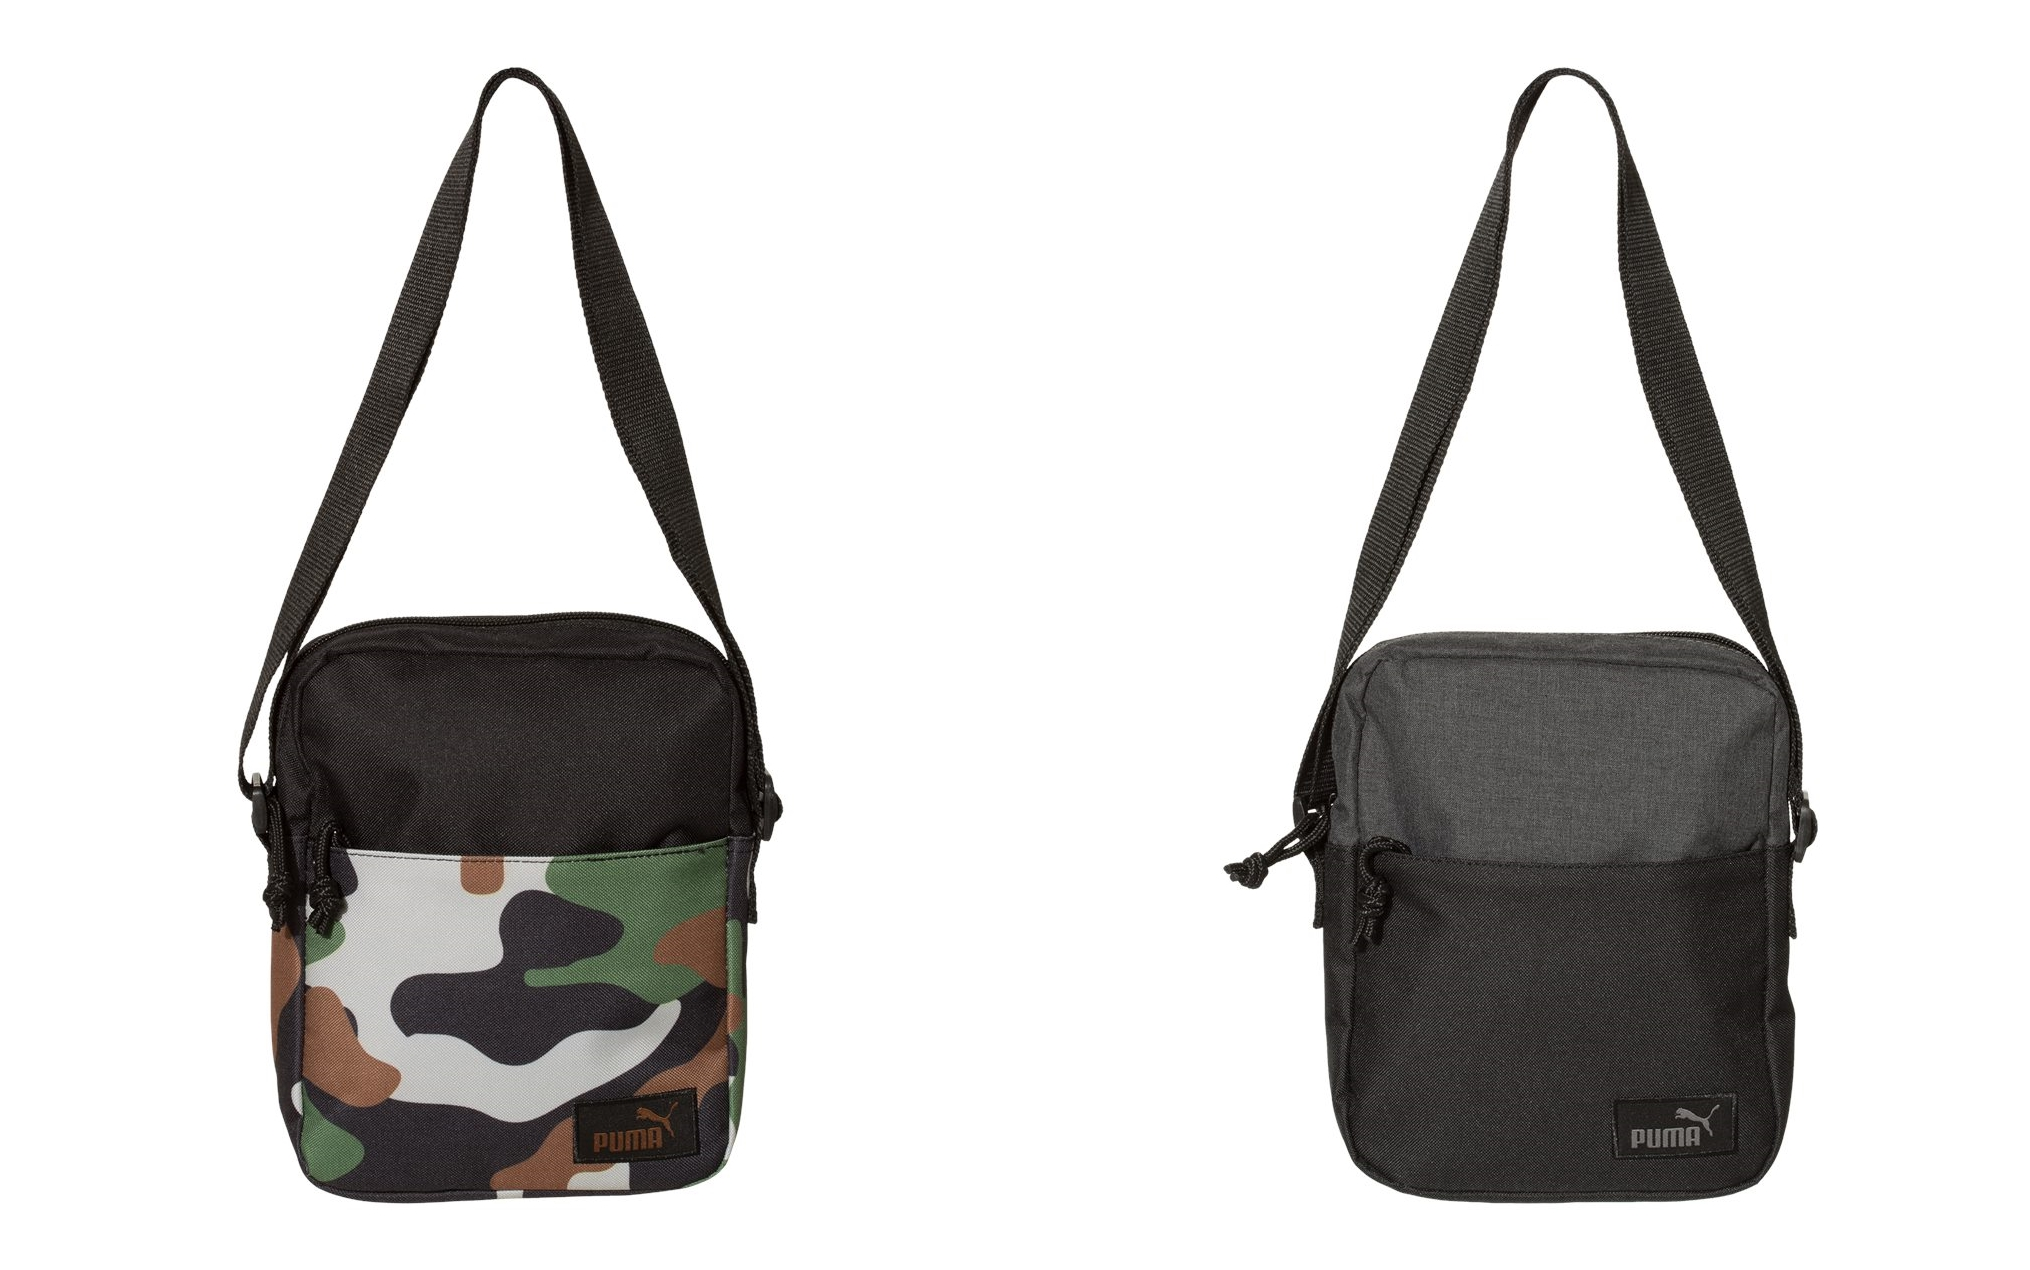 Puma PSC1044 Crossover Bag from NYFifth